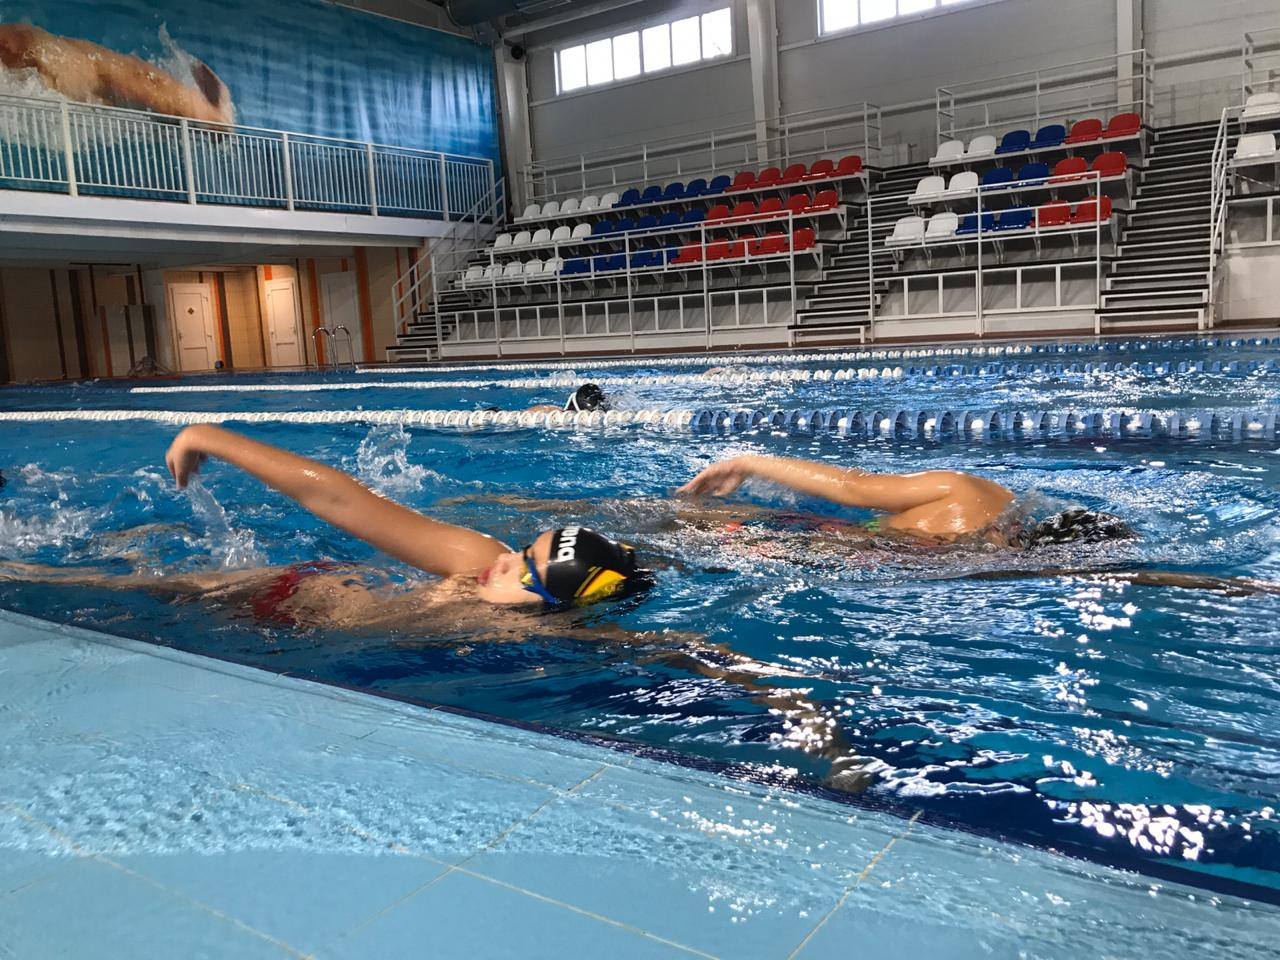 """Aqua Sport summer swim camp"" - досуг"